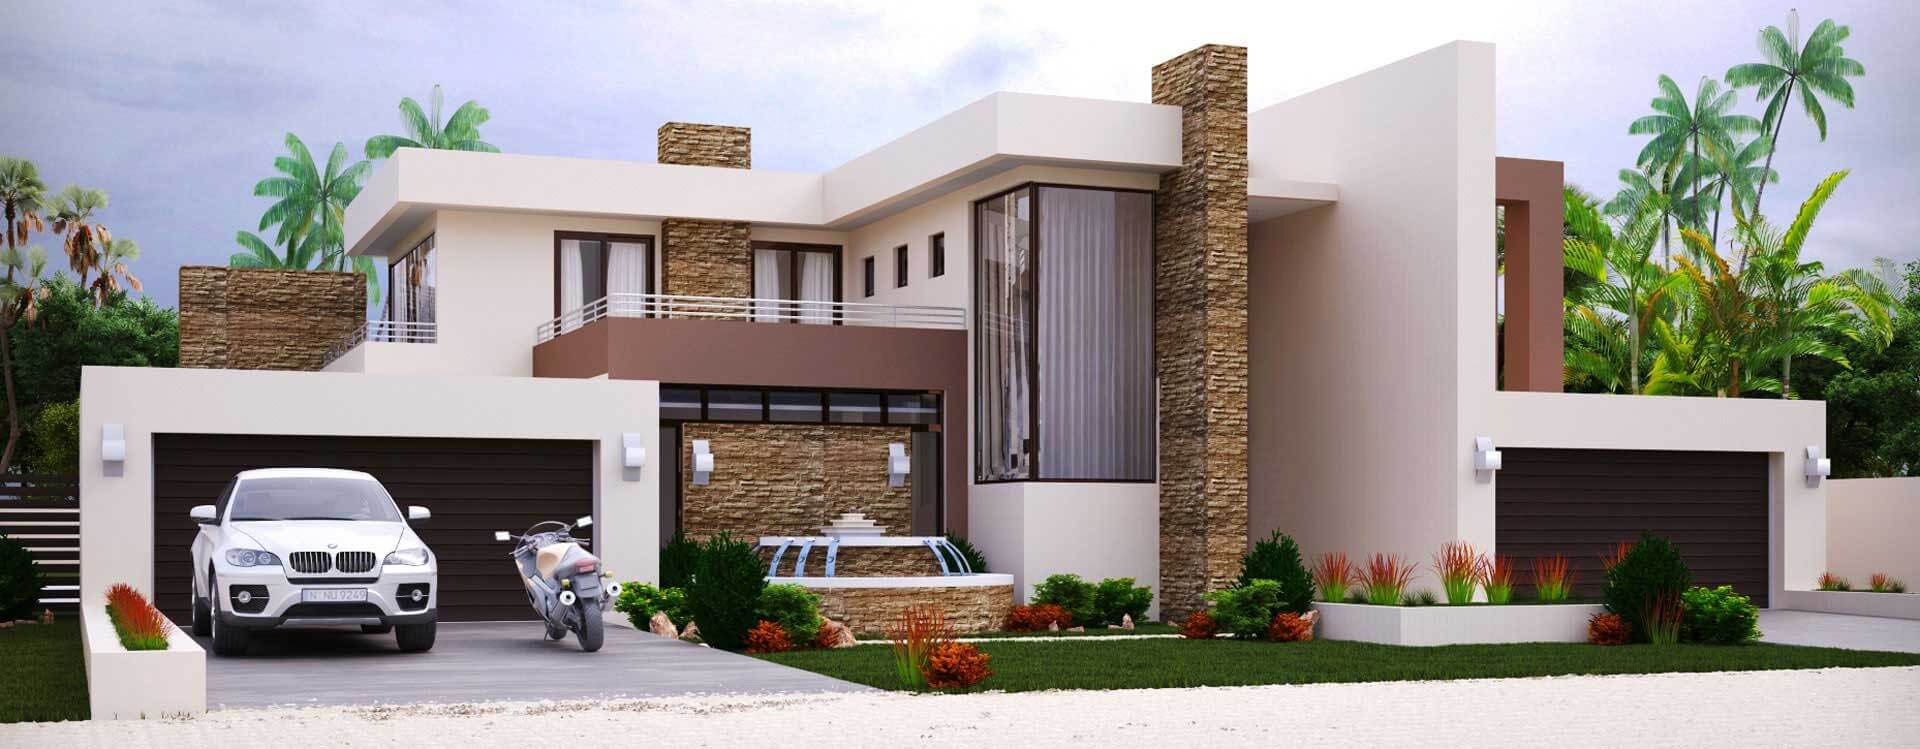 Contemporary 4 Bedroom House Plan 497m2 This 4 Bedroom House Plan Features The Follow In 2020 Double Storey House Plans House Plans For Sale House Plans South Africa